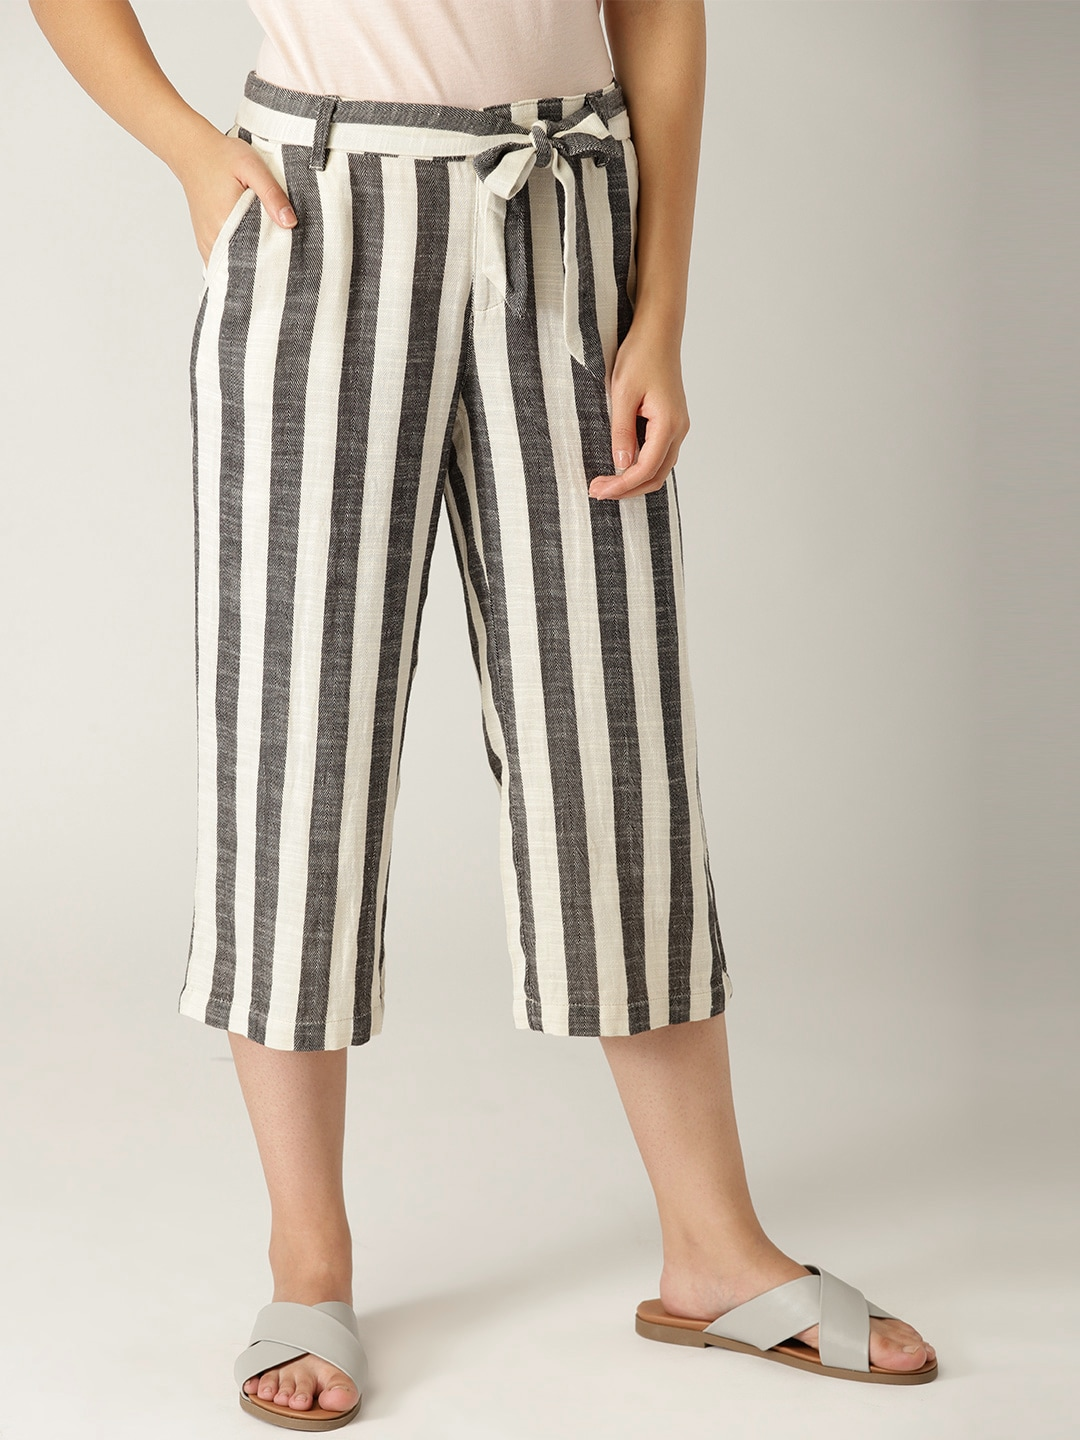 70e1de32caea Off White Trousers - Buy Off White Trousers online in India